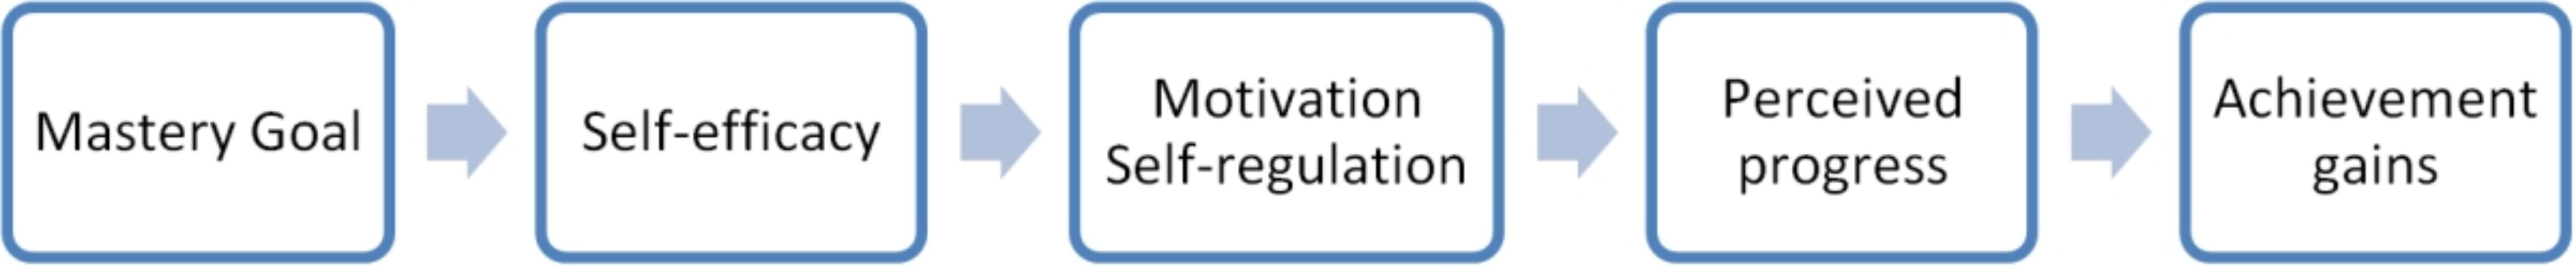 Figure 1. Effects of learning goals on motivation (adapted from Schunk 2012)